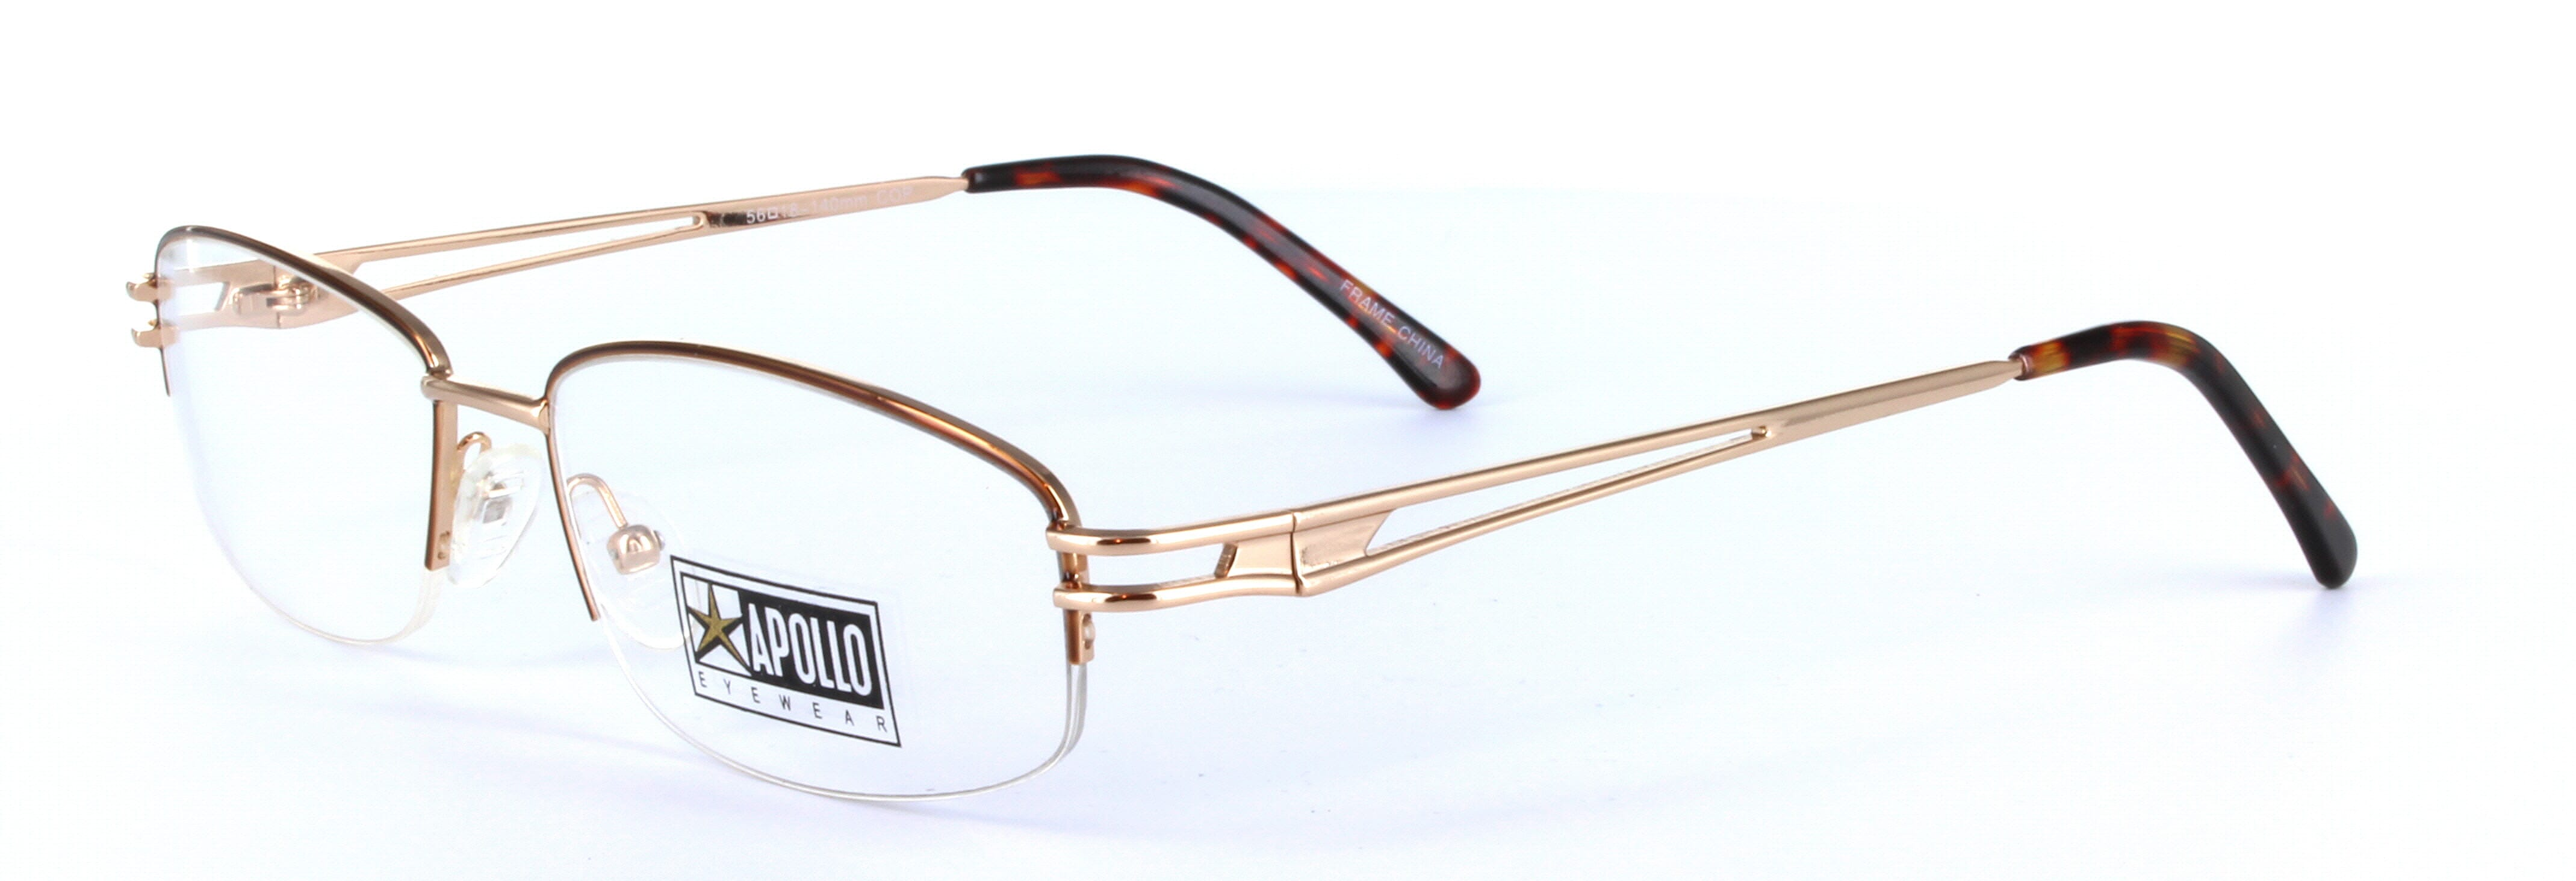 c475d37fbb Computer Glasses Frames and Lenses UK